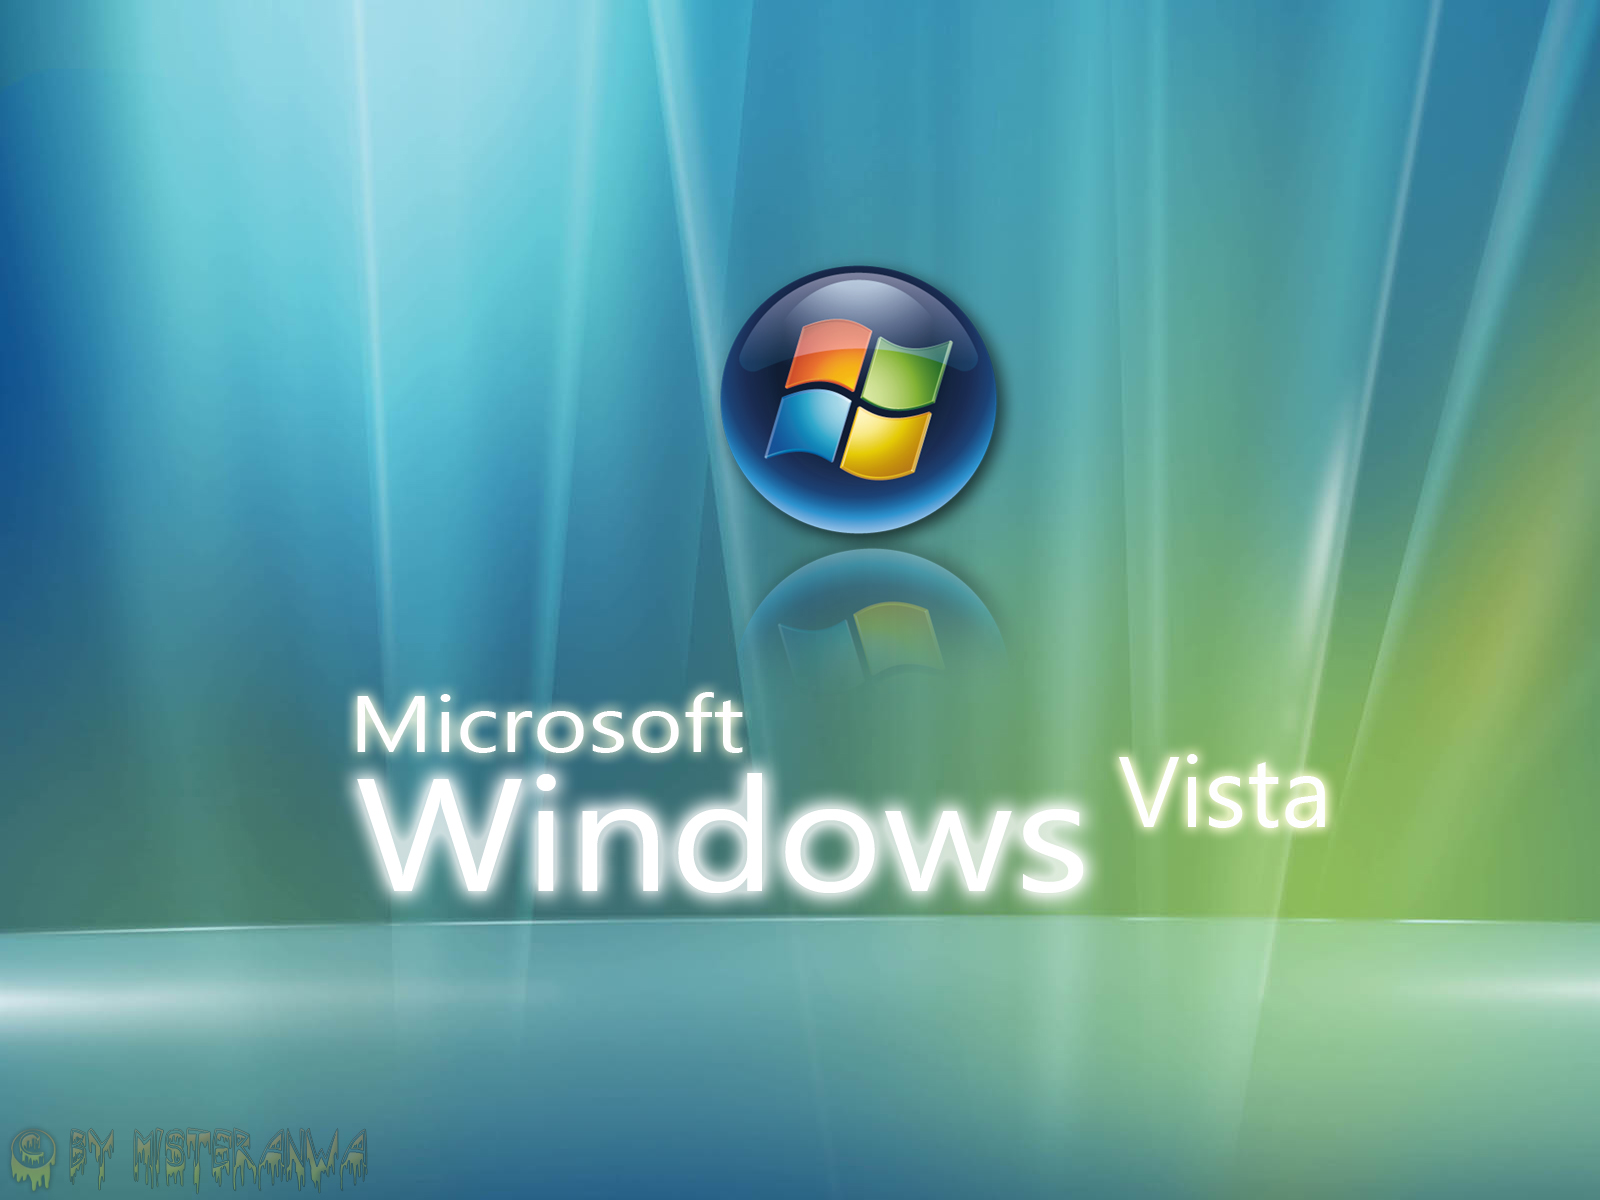 Windows vista ultimate 32 bit iso скачать торрент - c